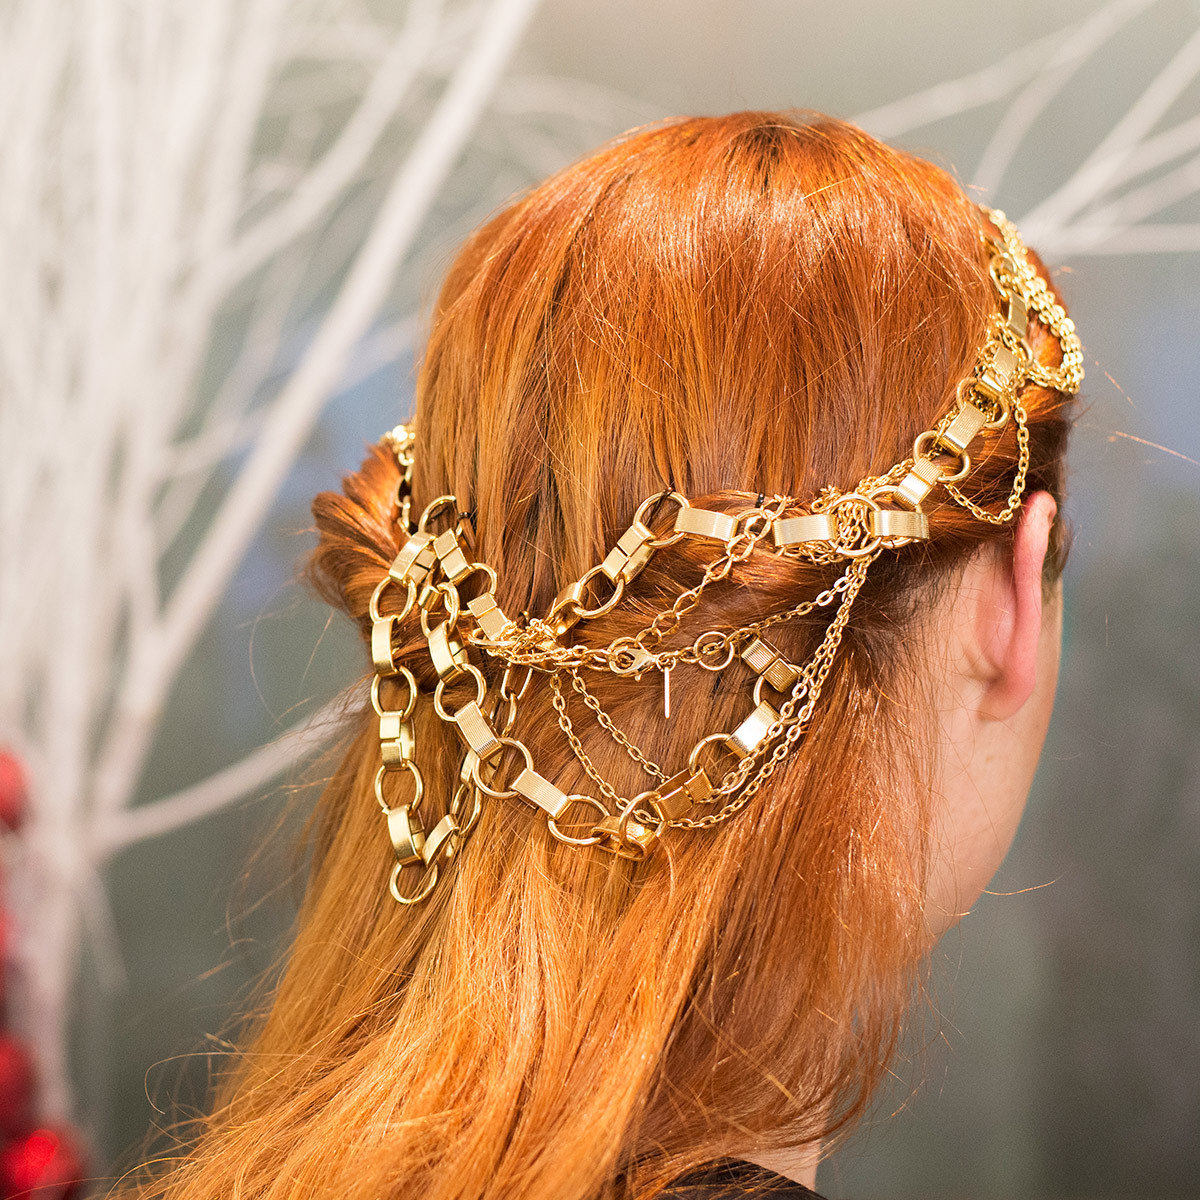 Holiday hair, hair accessories, ted gibson, Trish Halpin